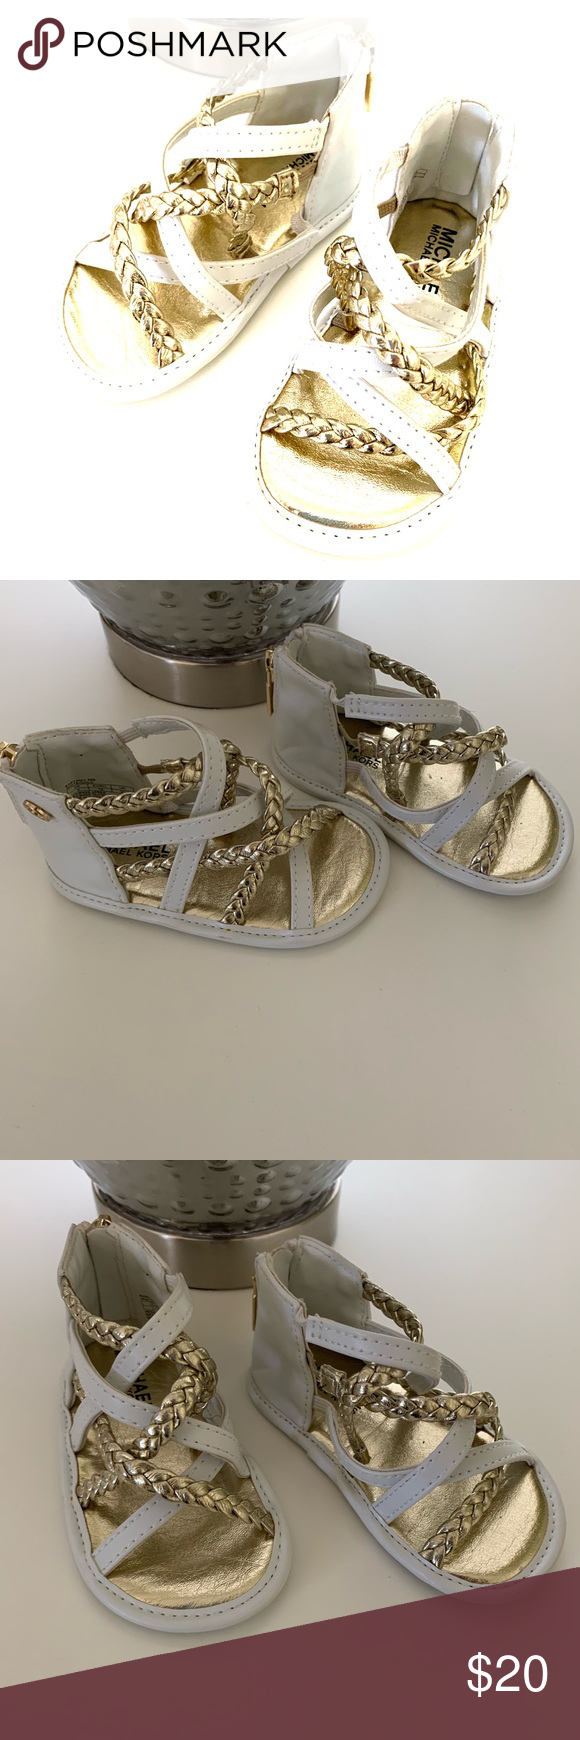 484e34481 Michael Kors infant girls gladiator sandal New without tags Shoes Baby &  Walker